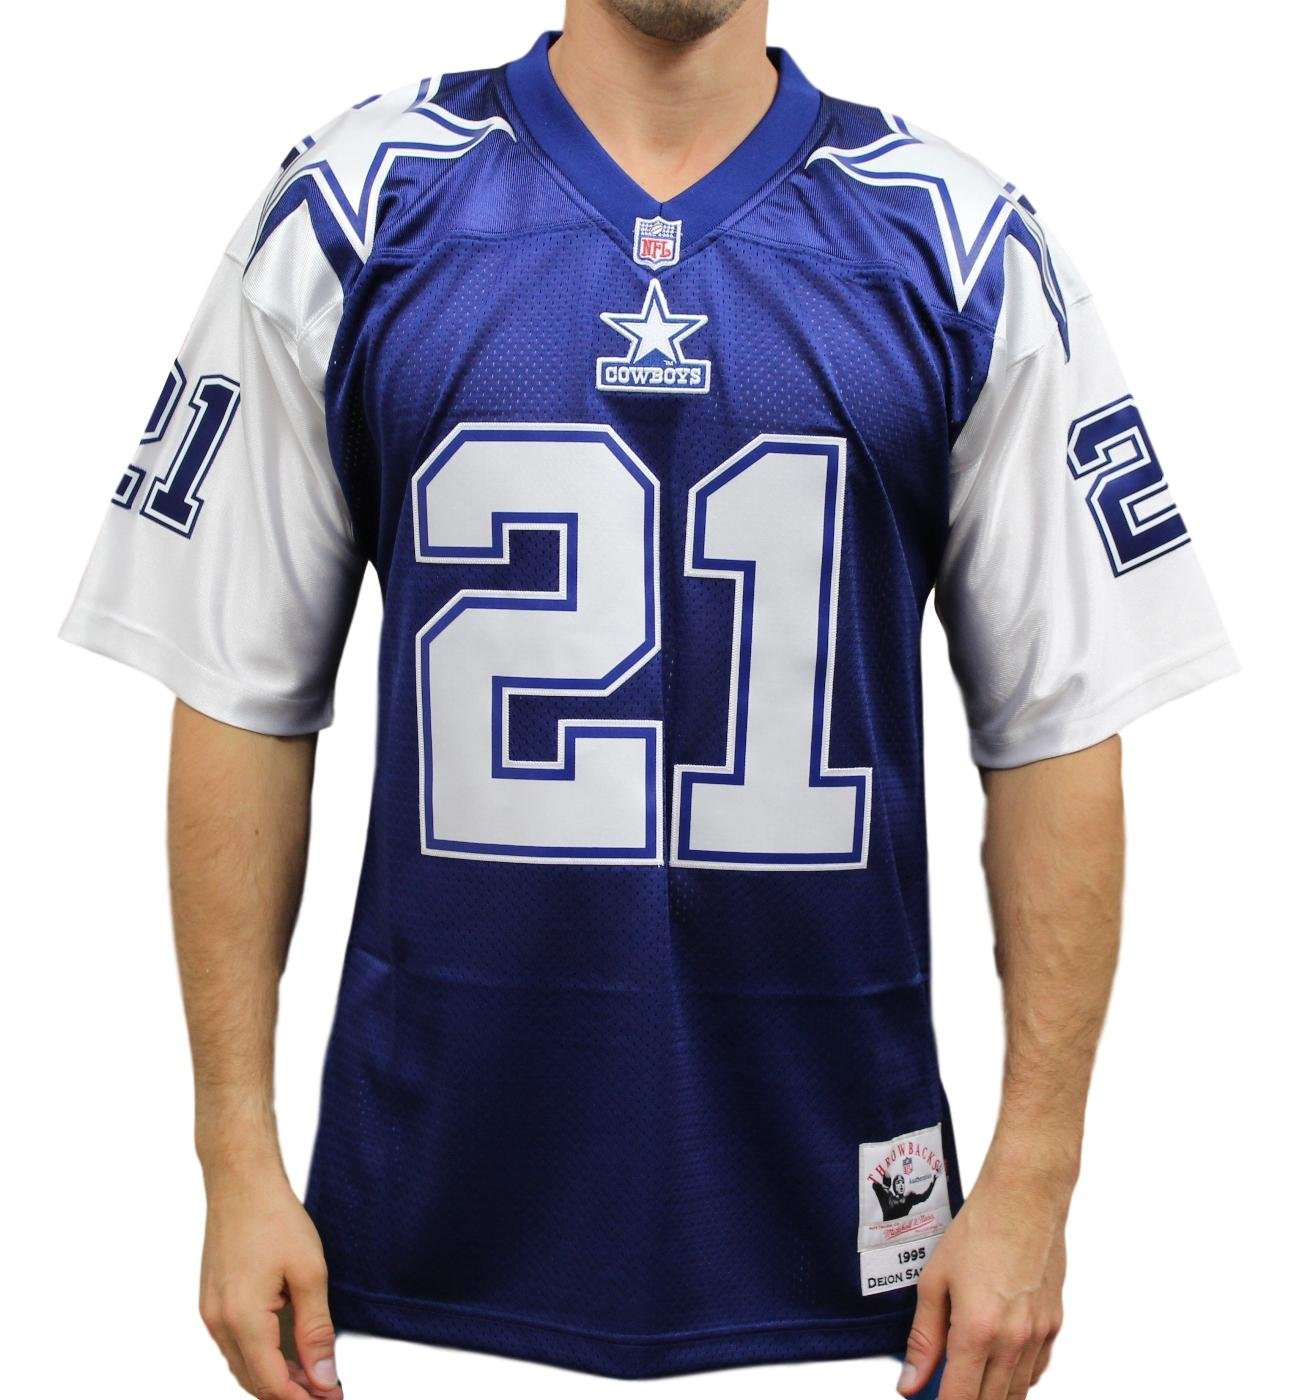 best website 7a8bd bf32d Deion Sanders Dallas Cowboys Mitchell & Ness Authentic 1995 ...